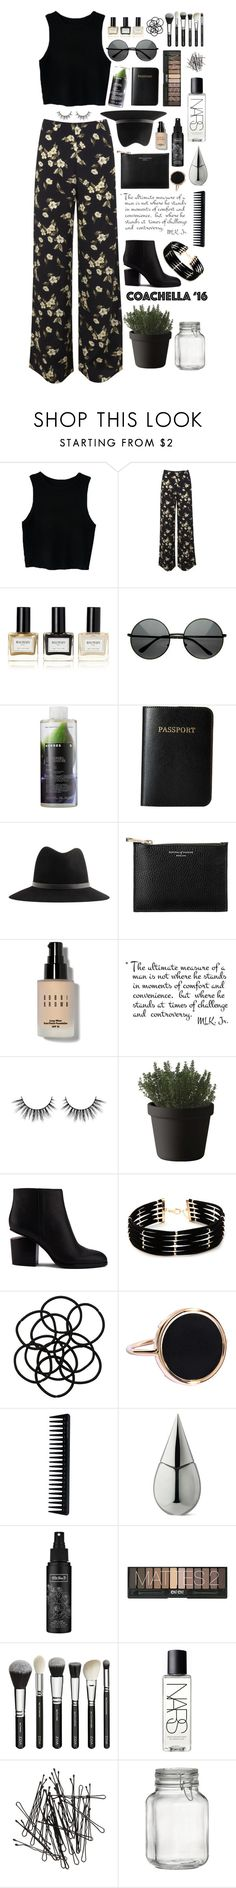 """""""Coachella Vibes"""" by styledbypr ❤ liked on Polyvore featuring Miss Selfridge, Balmain, Korres, Vera Bradley, Paul Smith, Aspinal of London, Bobbi Brown Cosmetics, Muuto, Alexander Wang and Forever 21"""